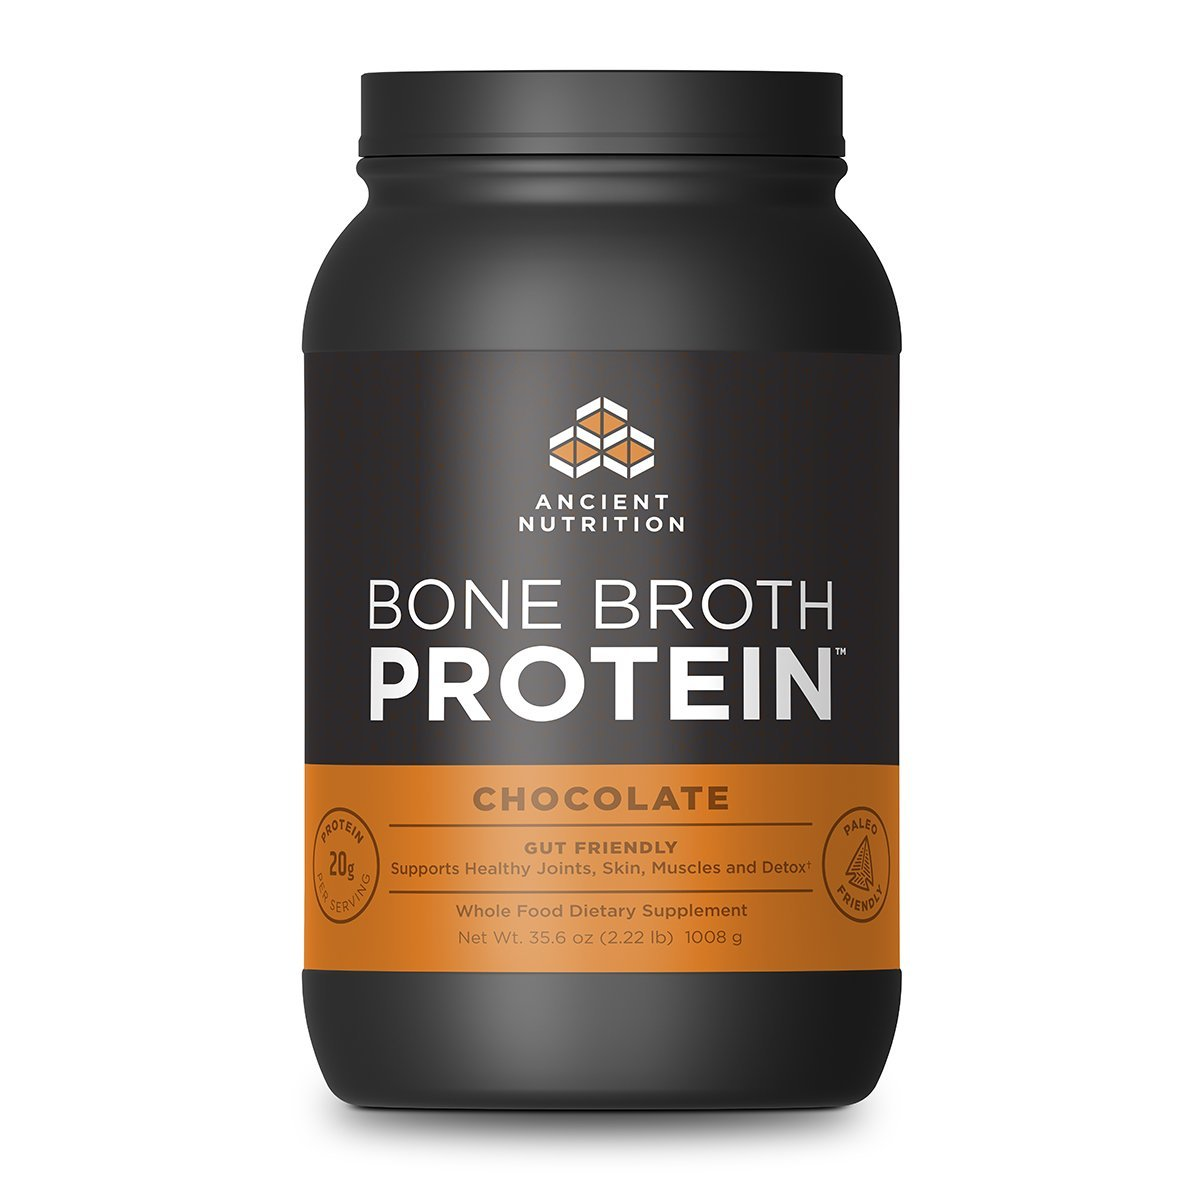 Ancient Nutrition Bone Broth Protein Powder, Chocolate Flavor, 40 Servings Size